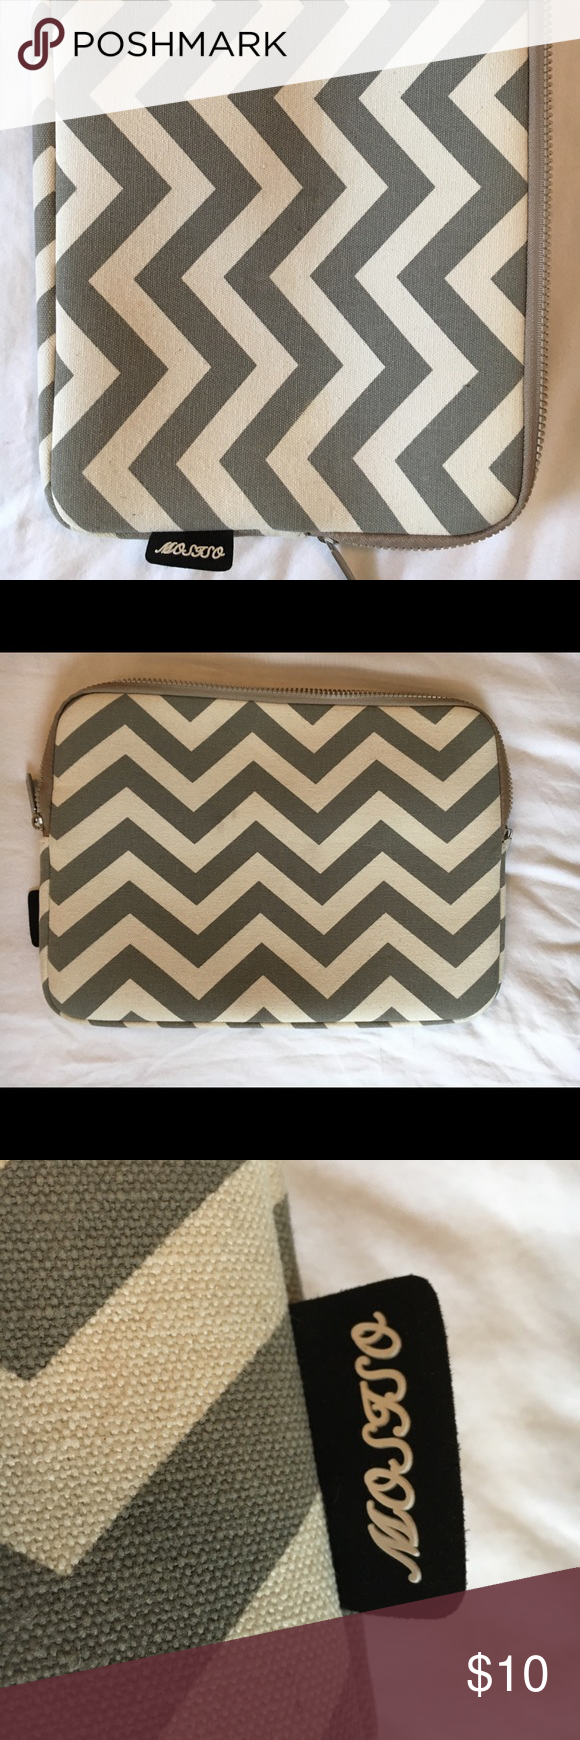 Laptop case Mosiso laptop sleeve for 13-13.3 inch MacBook Pro, MacBook Air. Chevron style canvas case cover, grey mosiso Accessories Laptop Cases